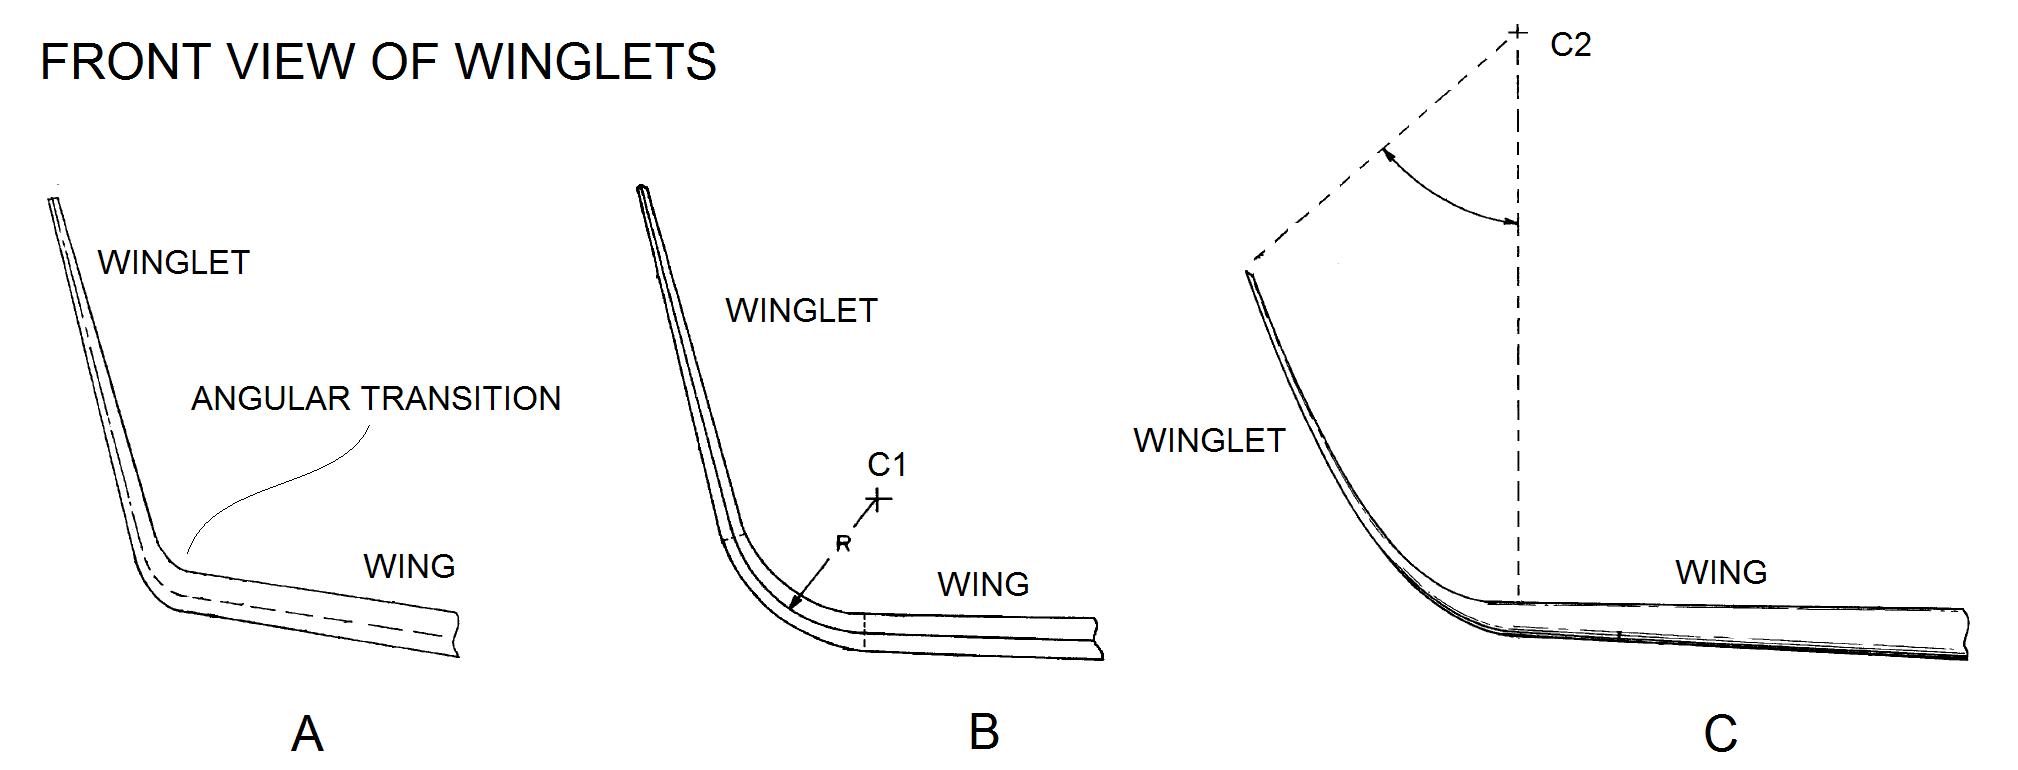 Winglets And Sharklets The Flying Engineer Plane Wing Diagram Different Popular A Conventional Winglet Sporting An Angular Transition Between